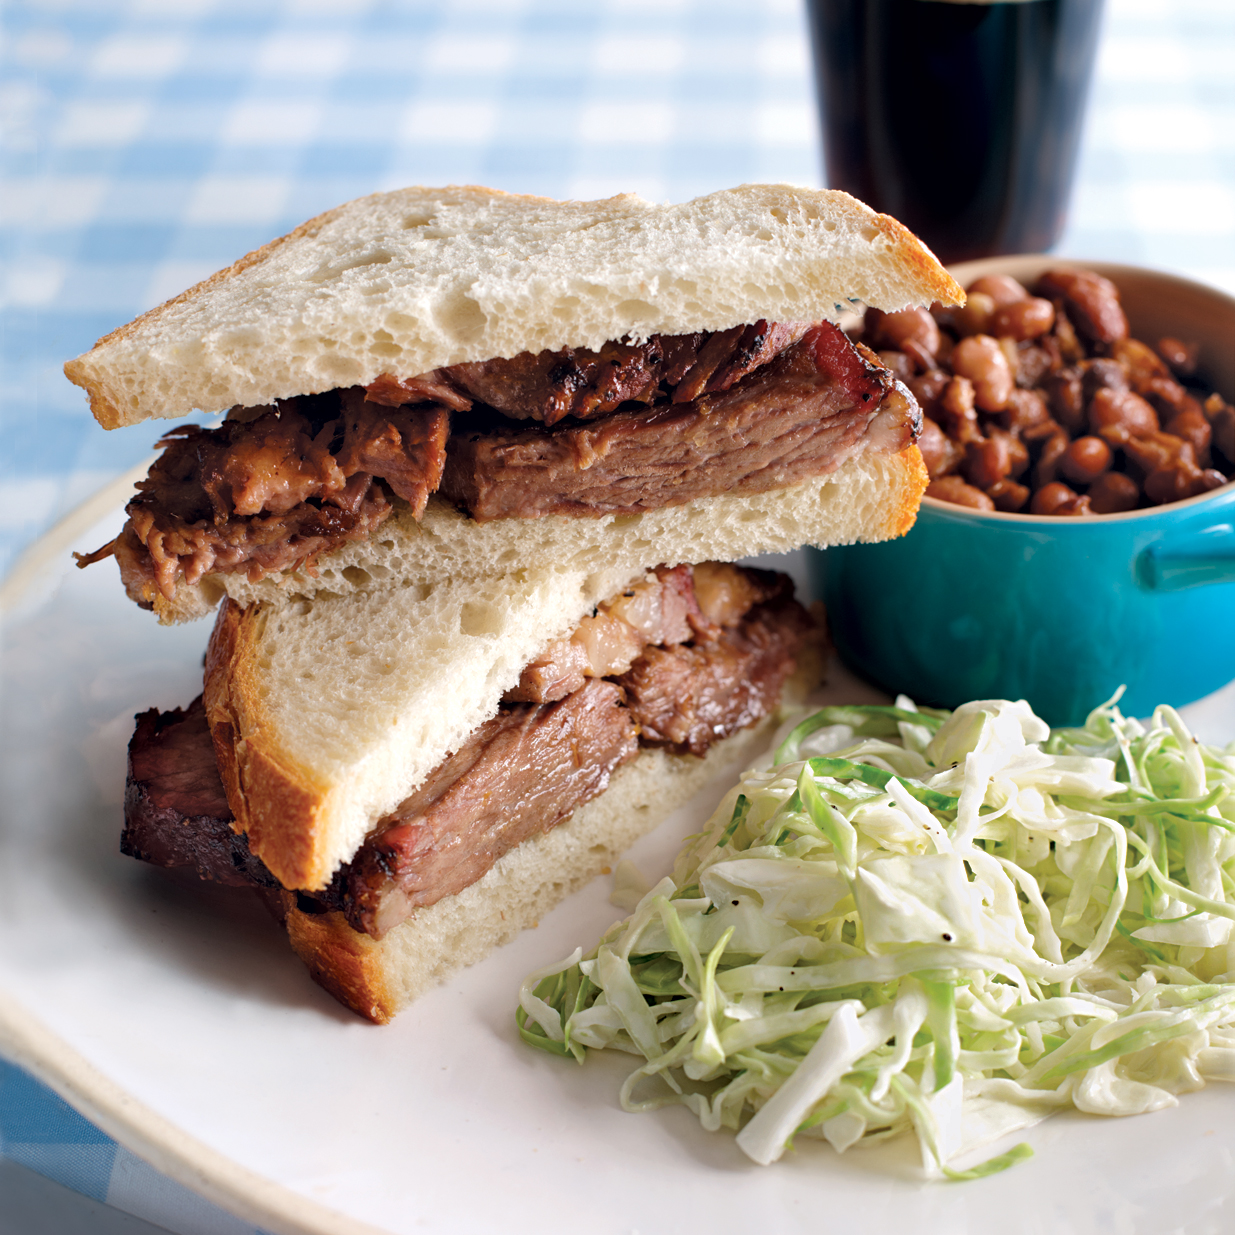 201106-r-texas-barbecue-brisket.jpg